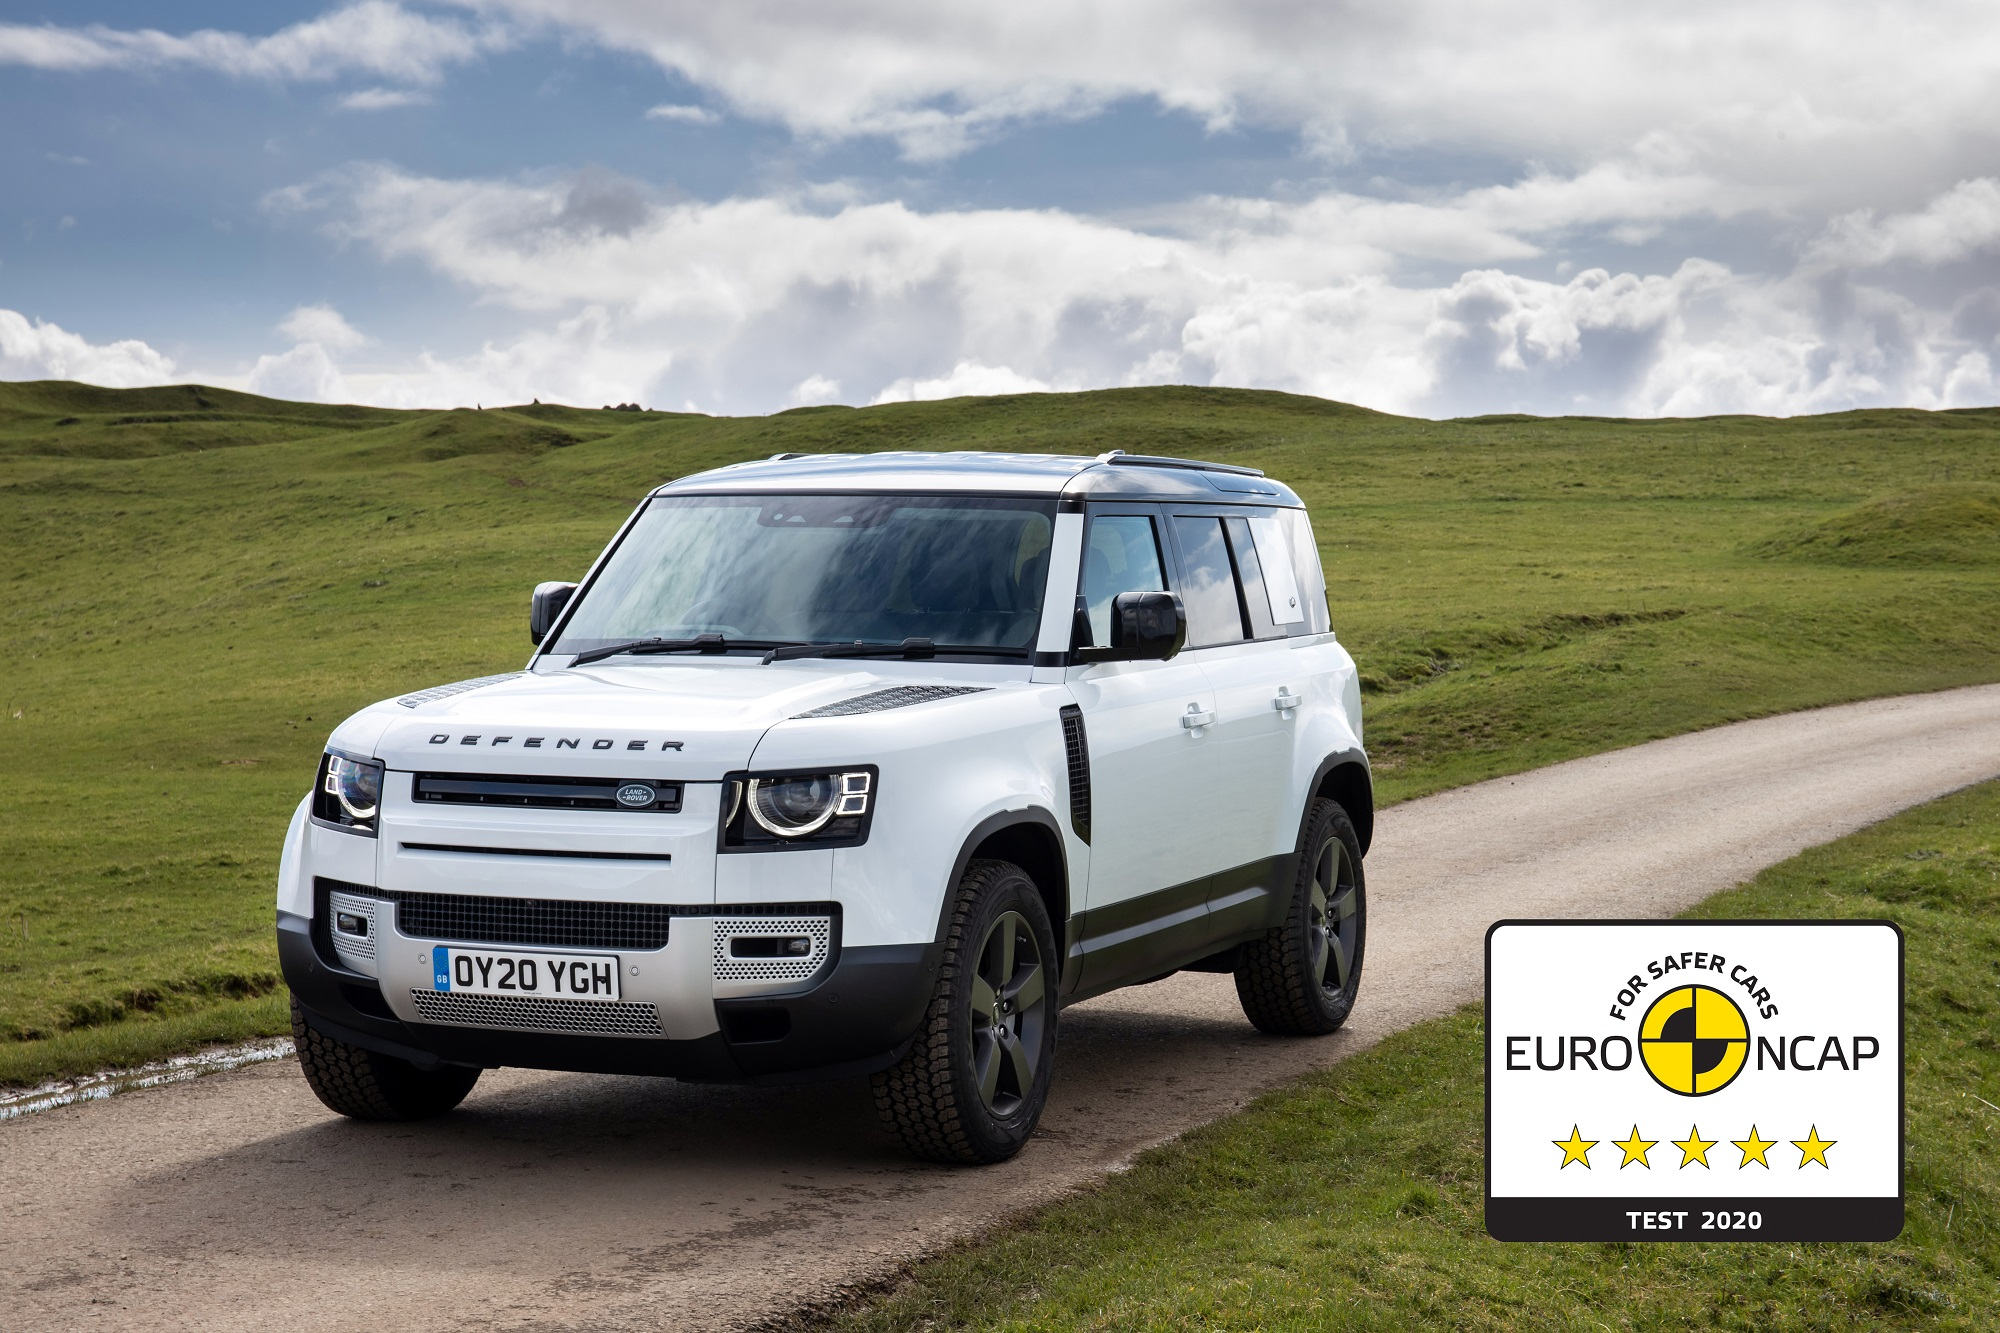 5 Star Safety Rating For Land Rover Defender From Euro NCAP (2)